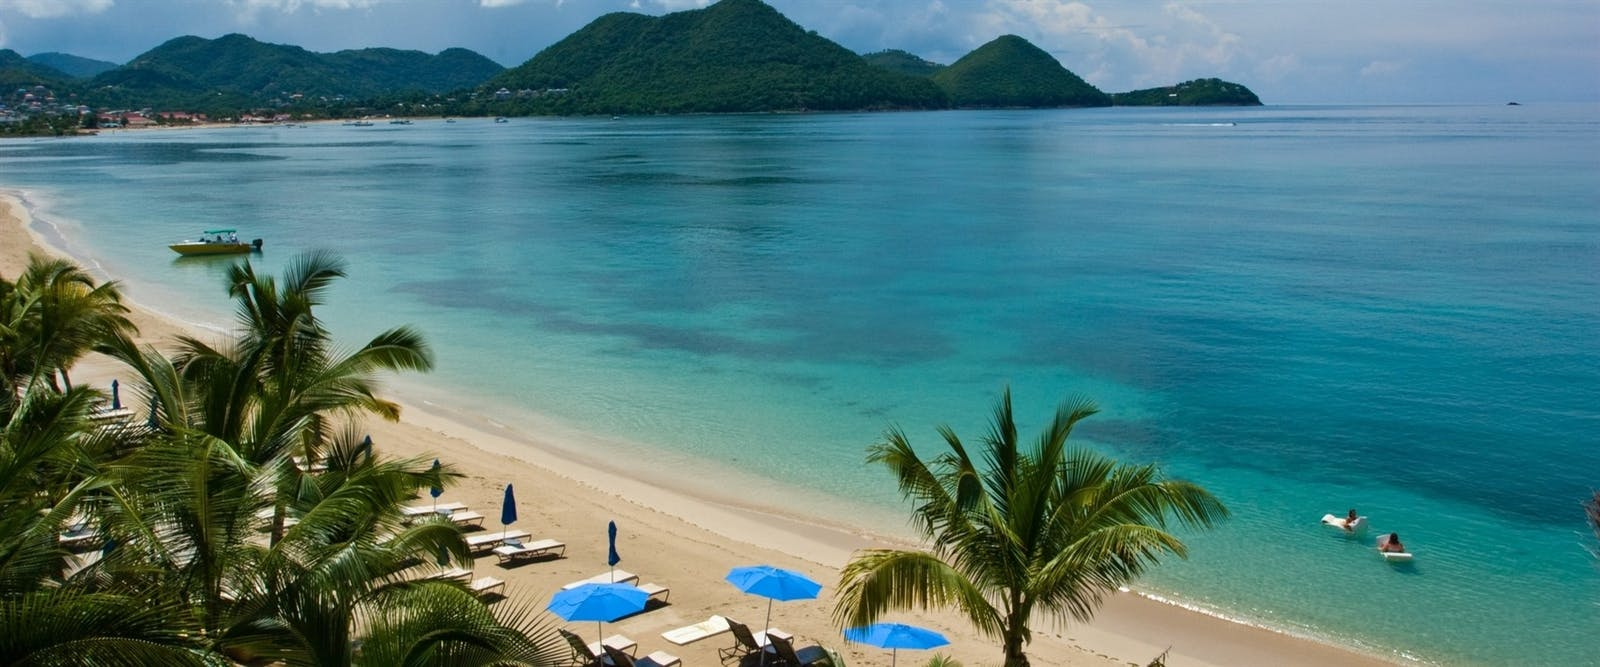 Beach Area at The Landings Resort and Spa by Elegant Hotels, St Lucia